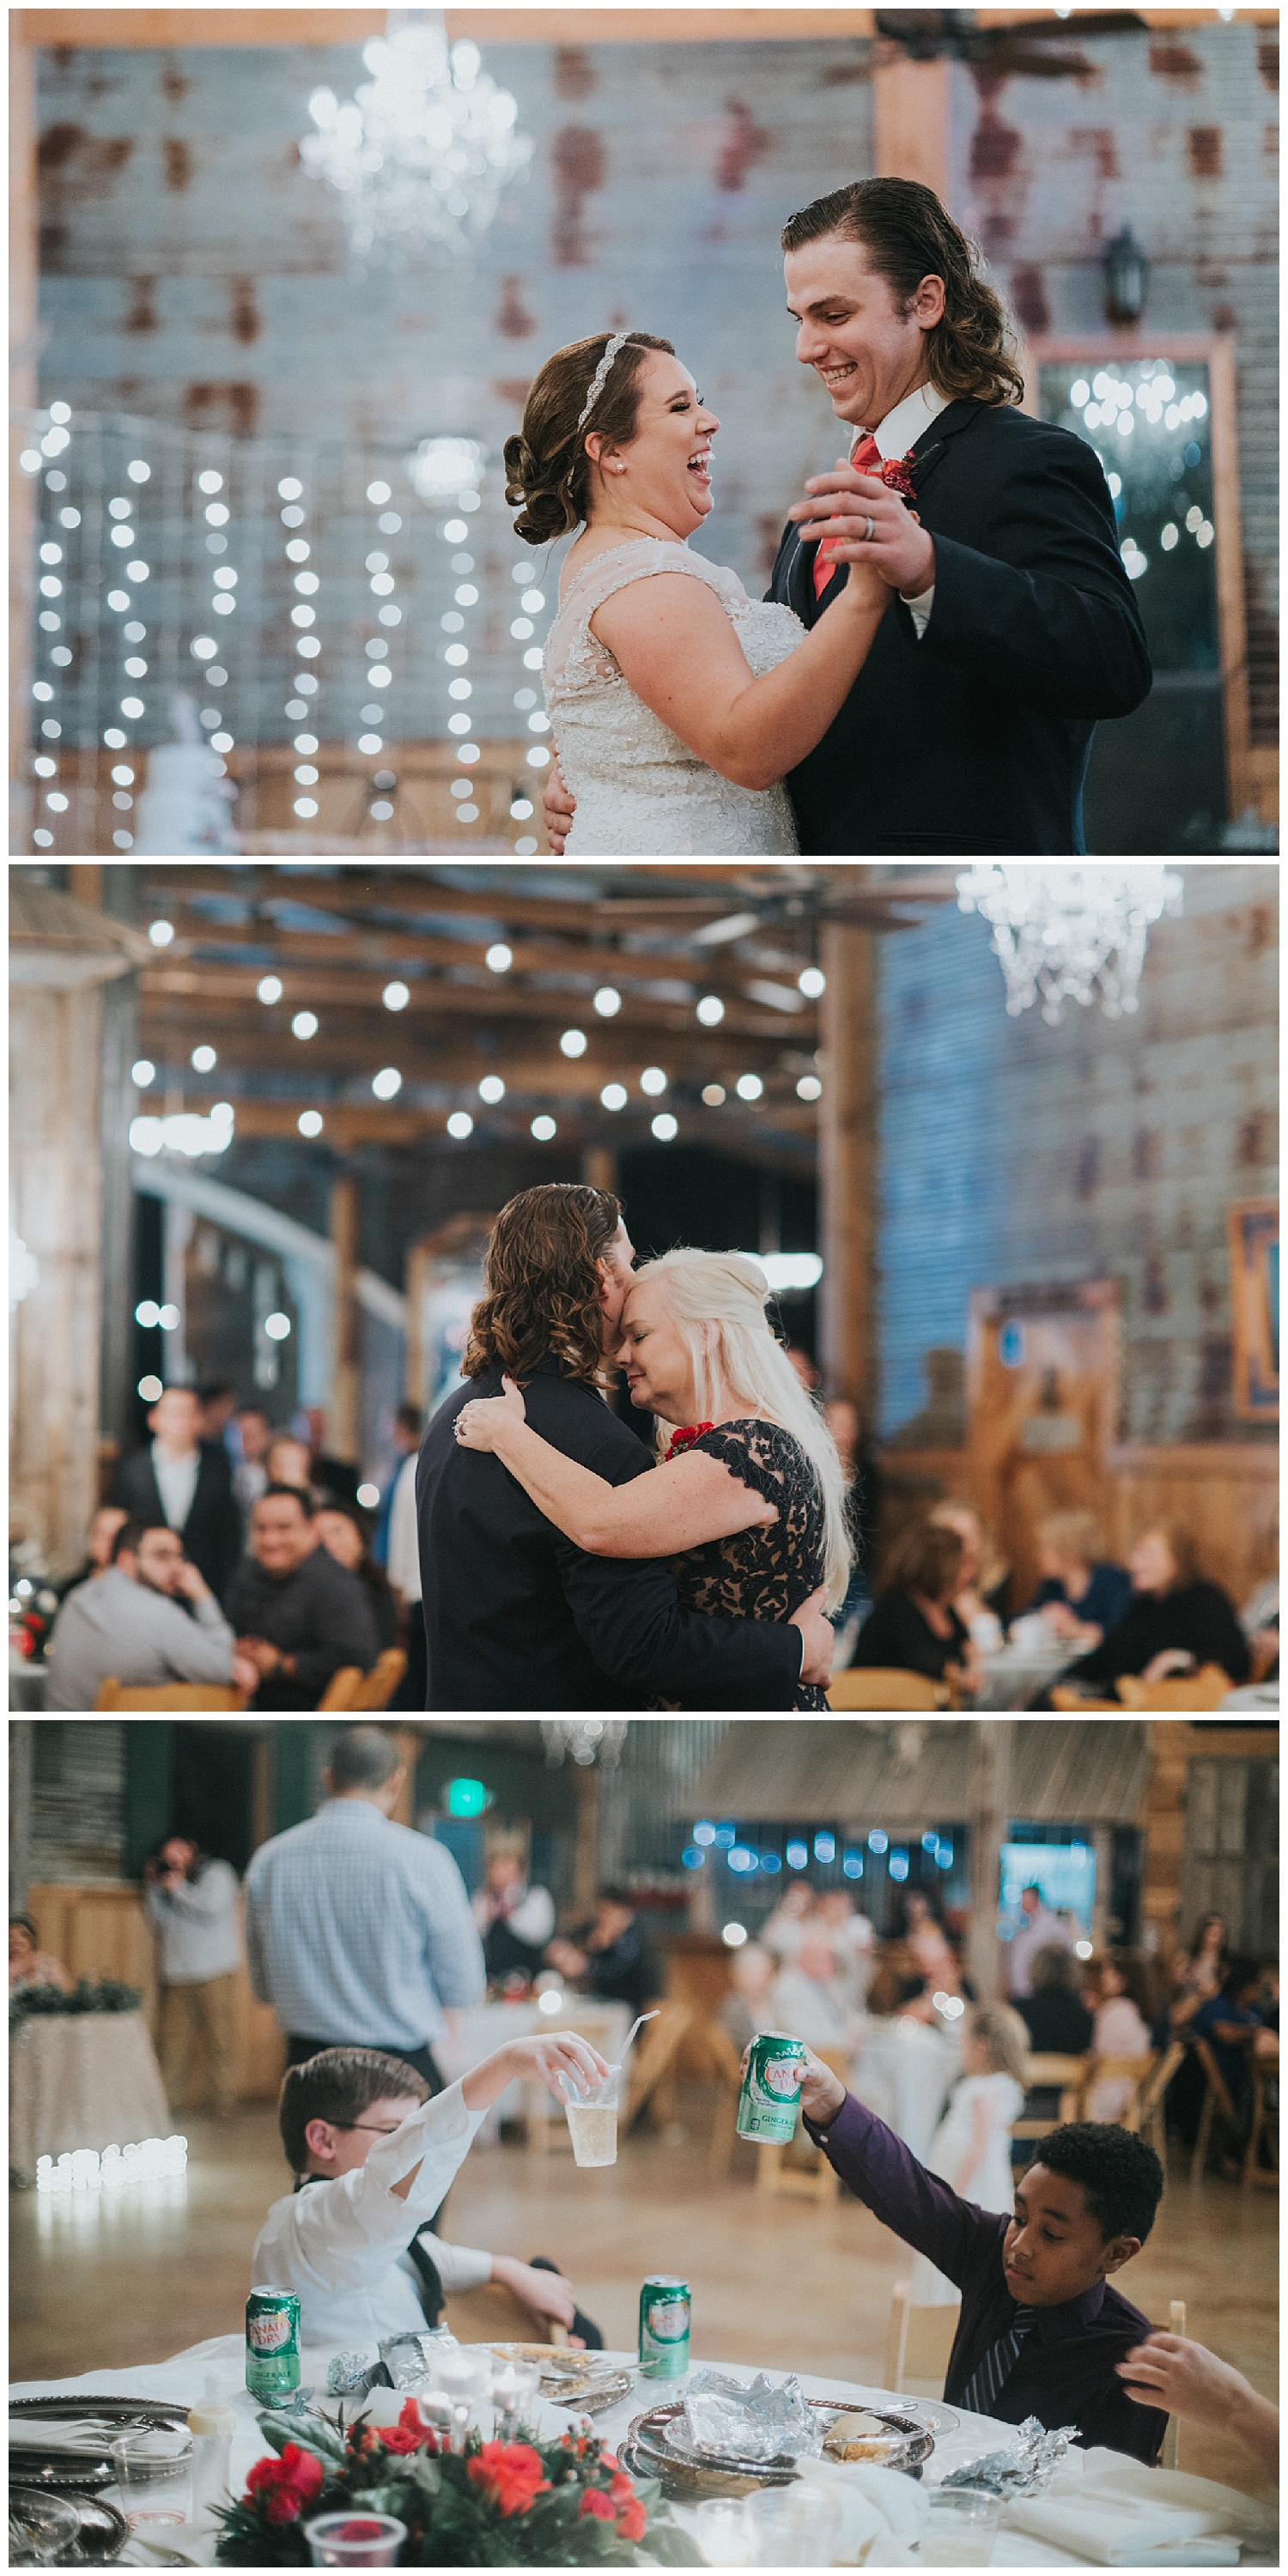 Cake and detail - san antonio wedding photographer